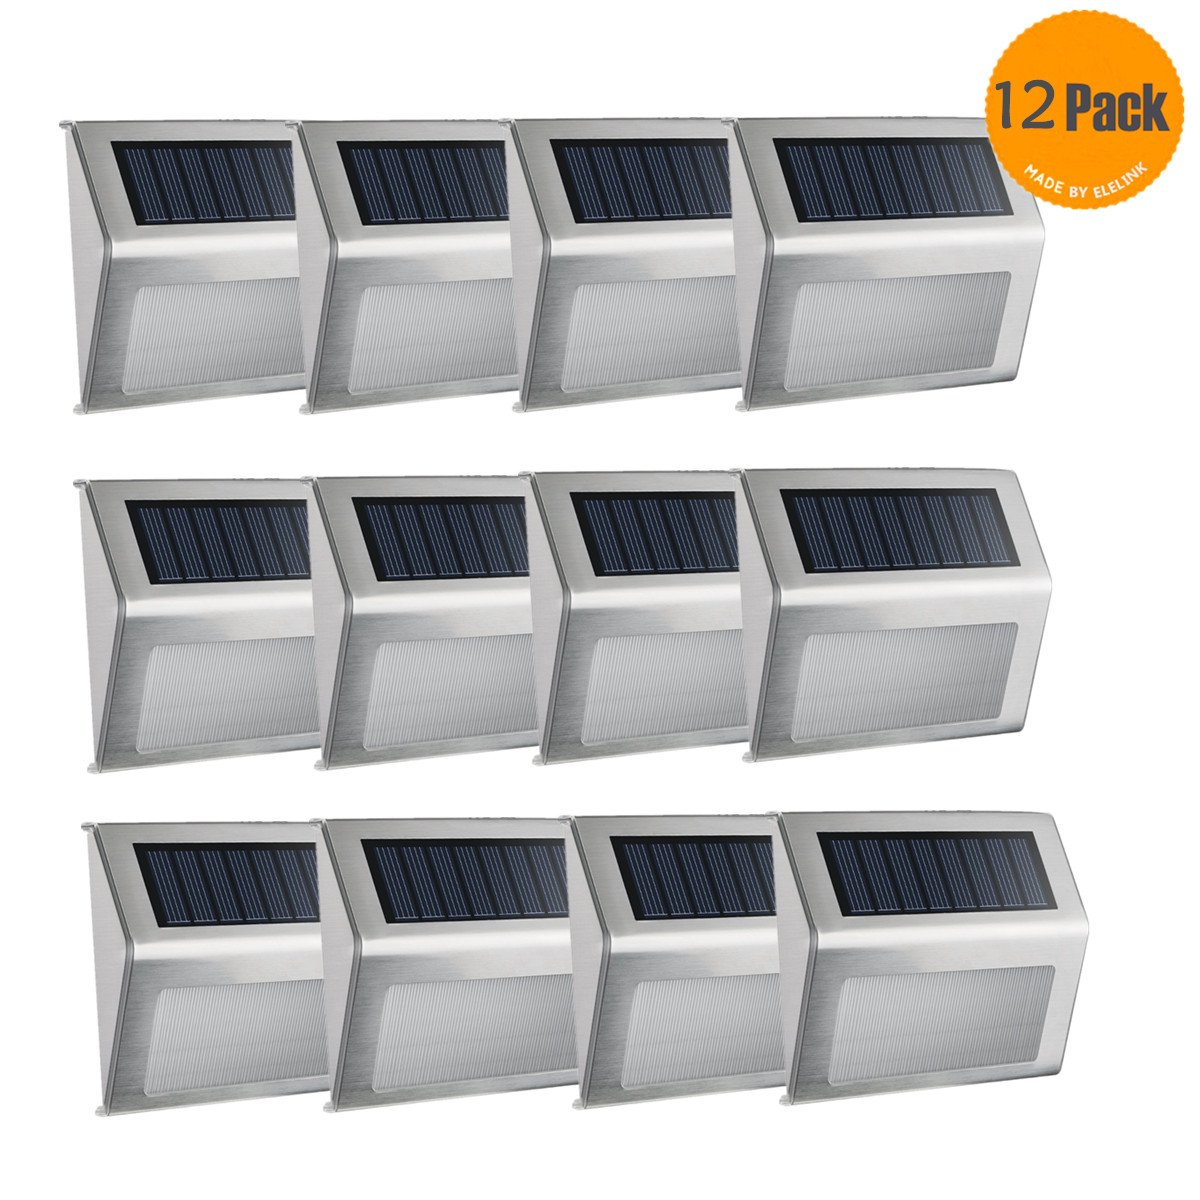 Solar Fence Post Lights,Elelink Outdoor Stainless Steel LED Solar Step Lamp; Illuminates Stairs /Path /Landscape /Garden /Floor /Wall /Patio Lamp, Waterproof (12 PACK)